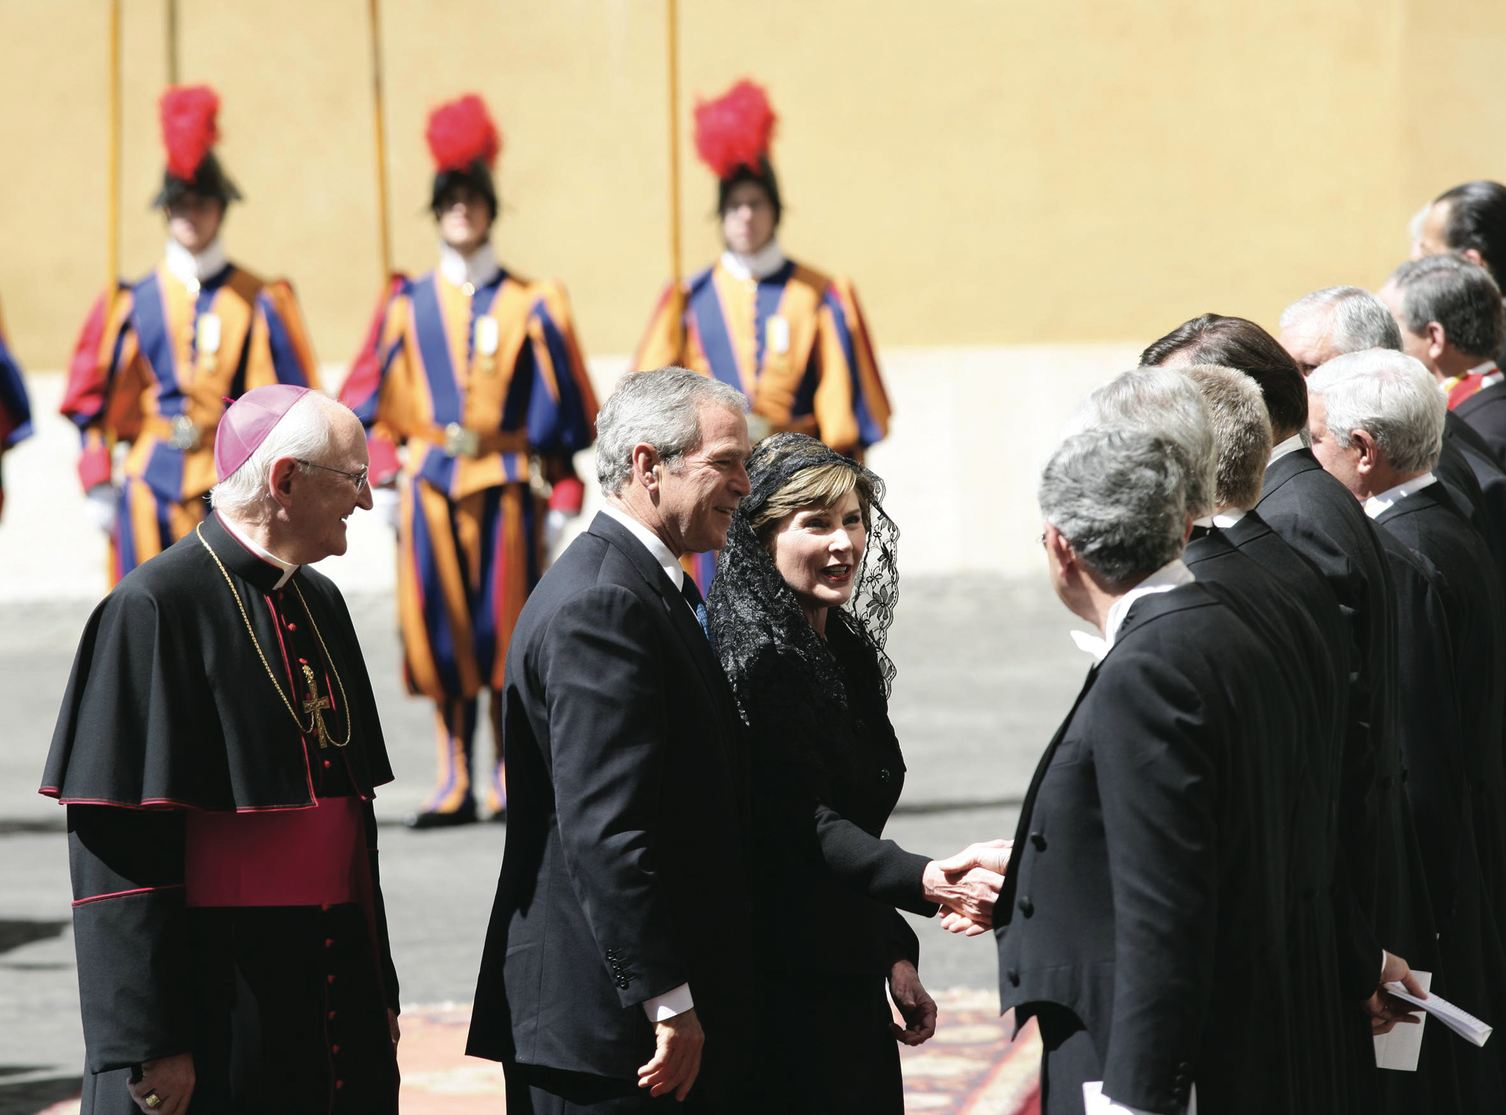 al diplomatic role. Right, the visit of President George W. Bush and his wife Laura to Pope Benedict XVI. Accompanying them was then Archbishop, now Cardinal James Harvey, whom Rooney cites with appreciation in his book (Galazka photo)